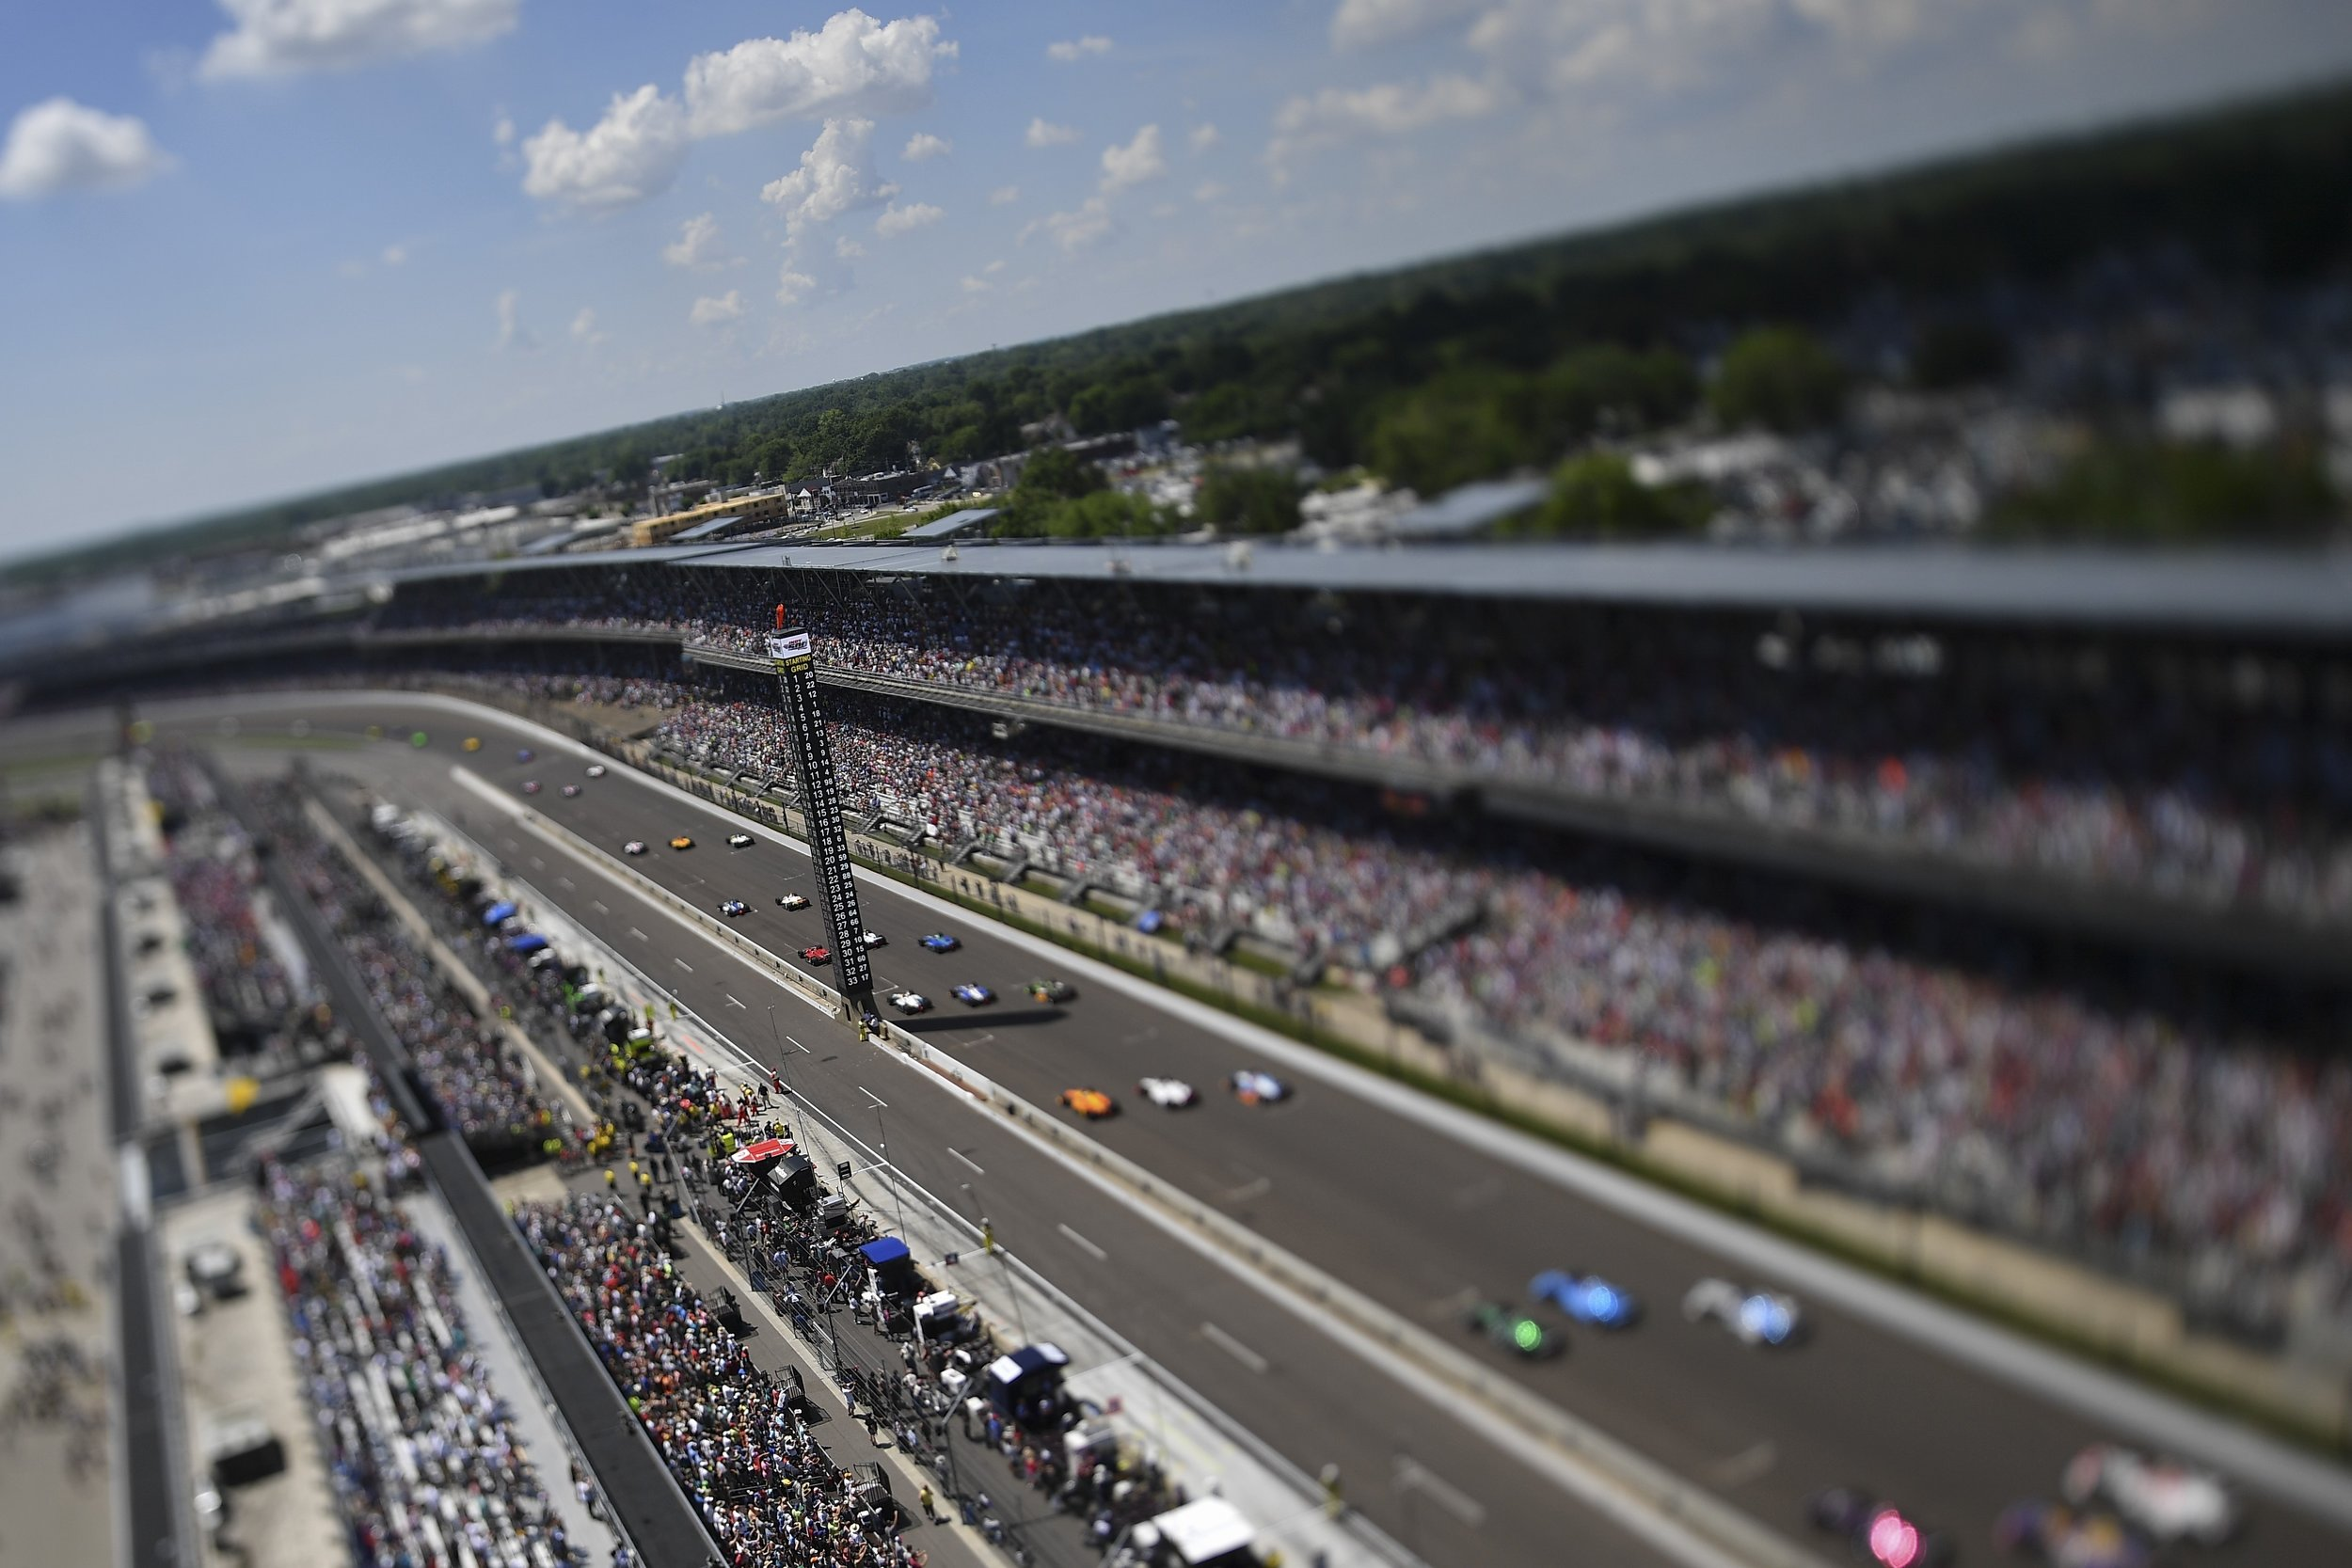 I wanted to do something different for the start of this year's Indy 500. Our staff has all bases covered, inside and outside turn 1,2,3 and 4. Why not the roof? The tilt-shift specialty lens gives a creative almost toy look to the shot.